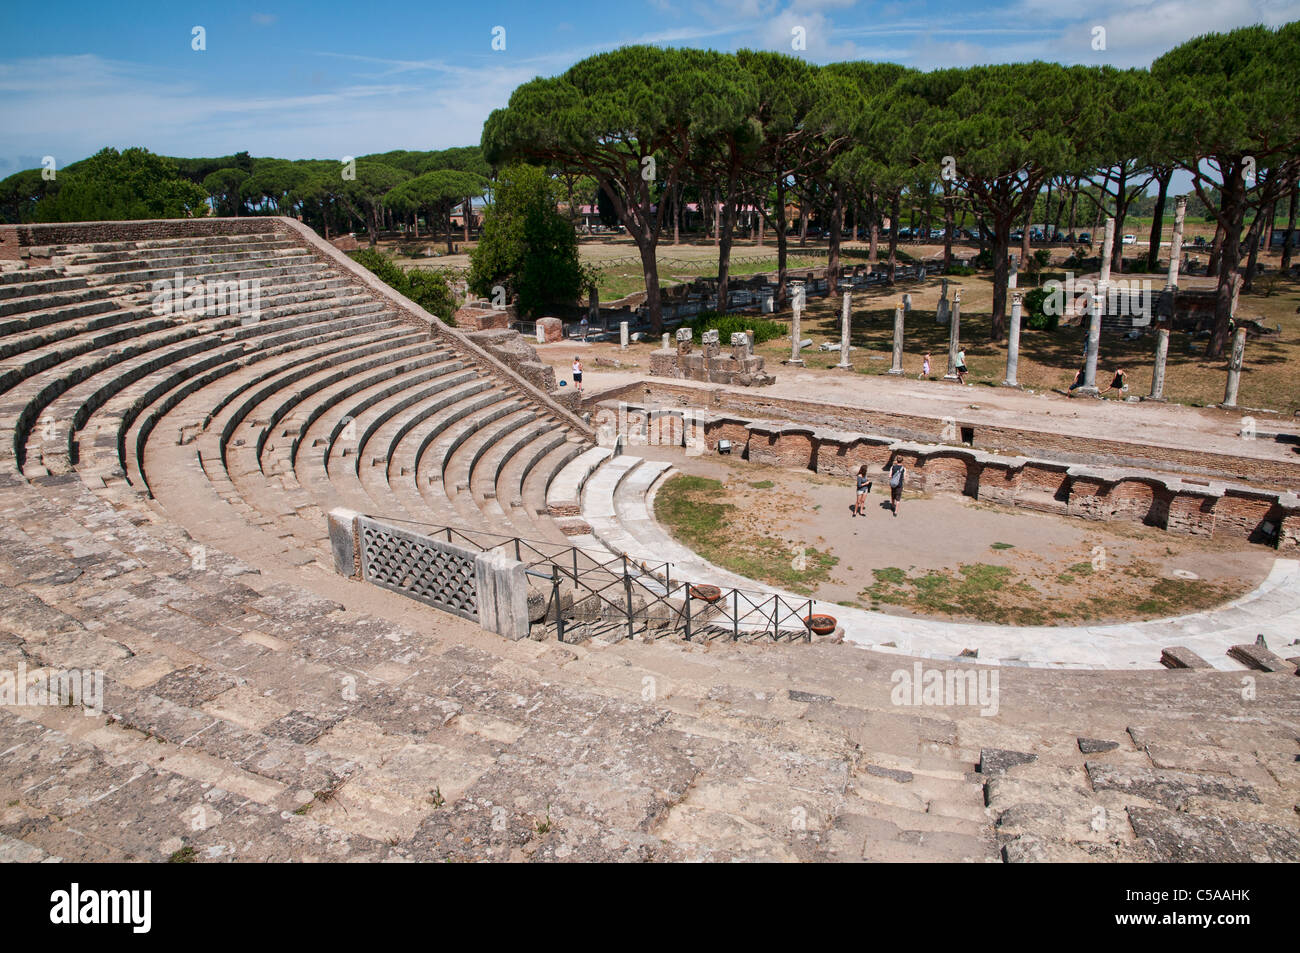 The ruins of the ancient roman port of Ostia, nearby Rome. - Stock Image